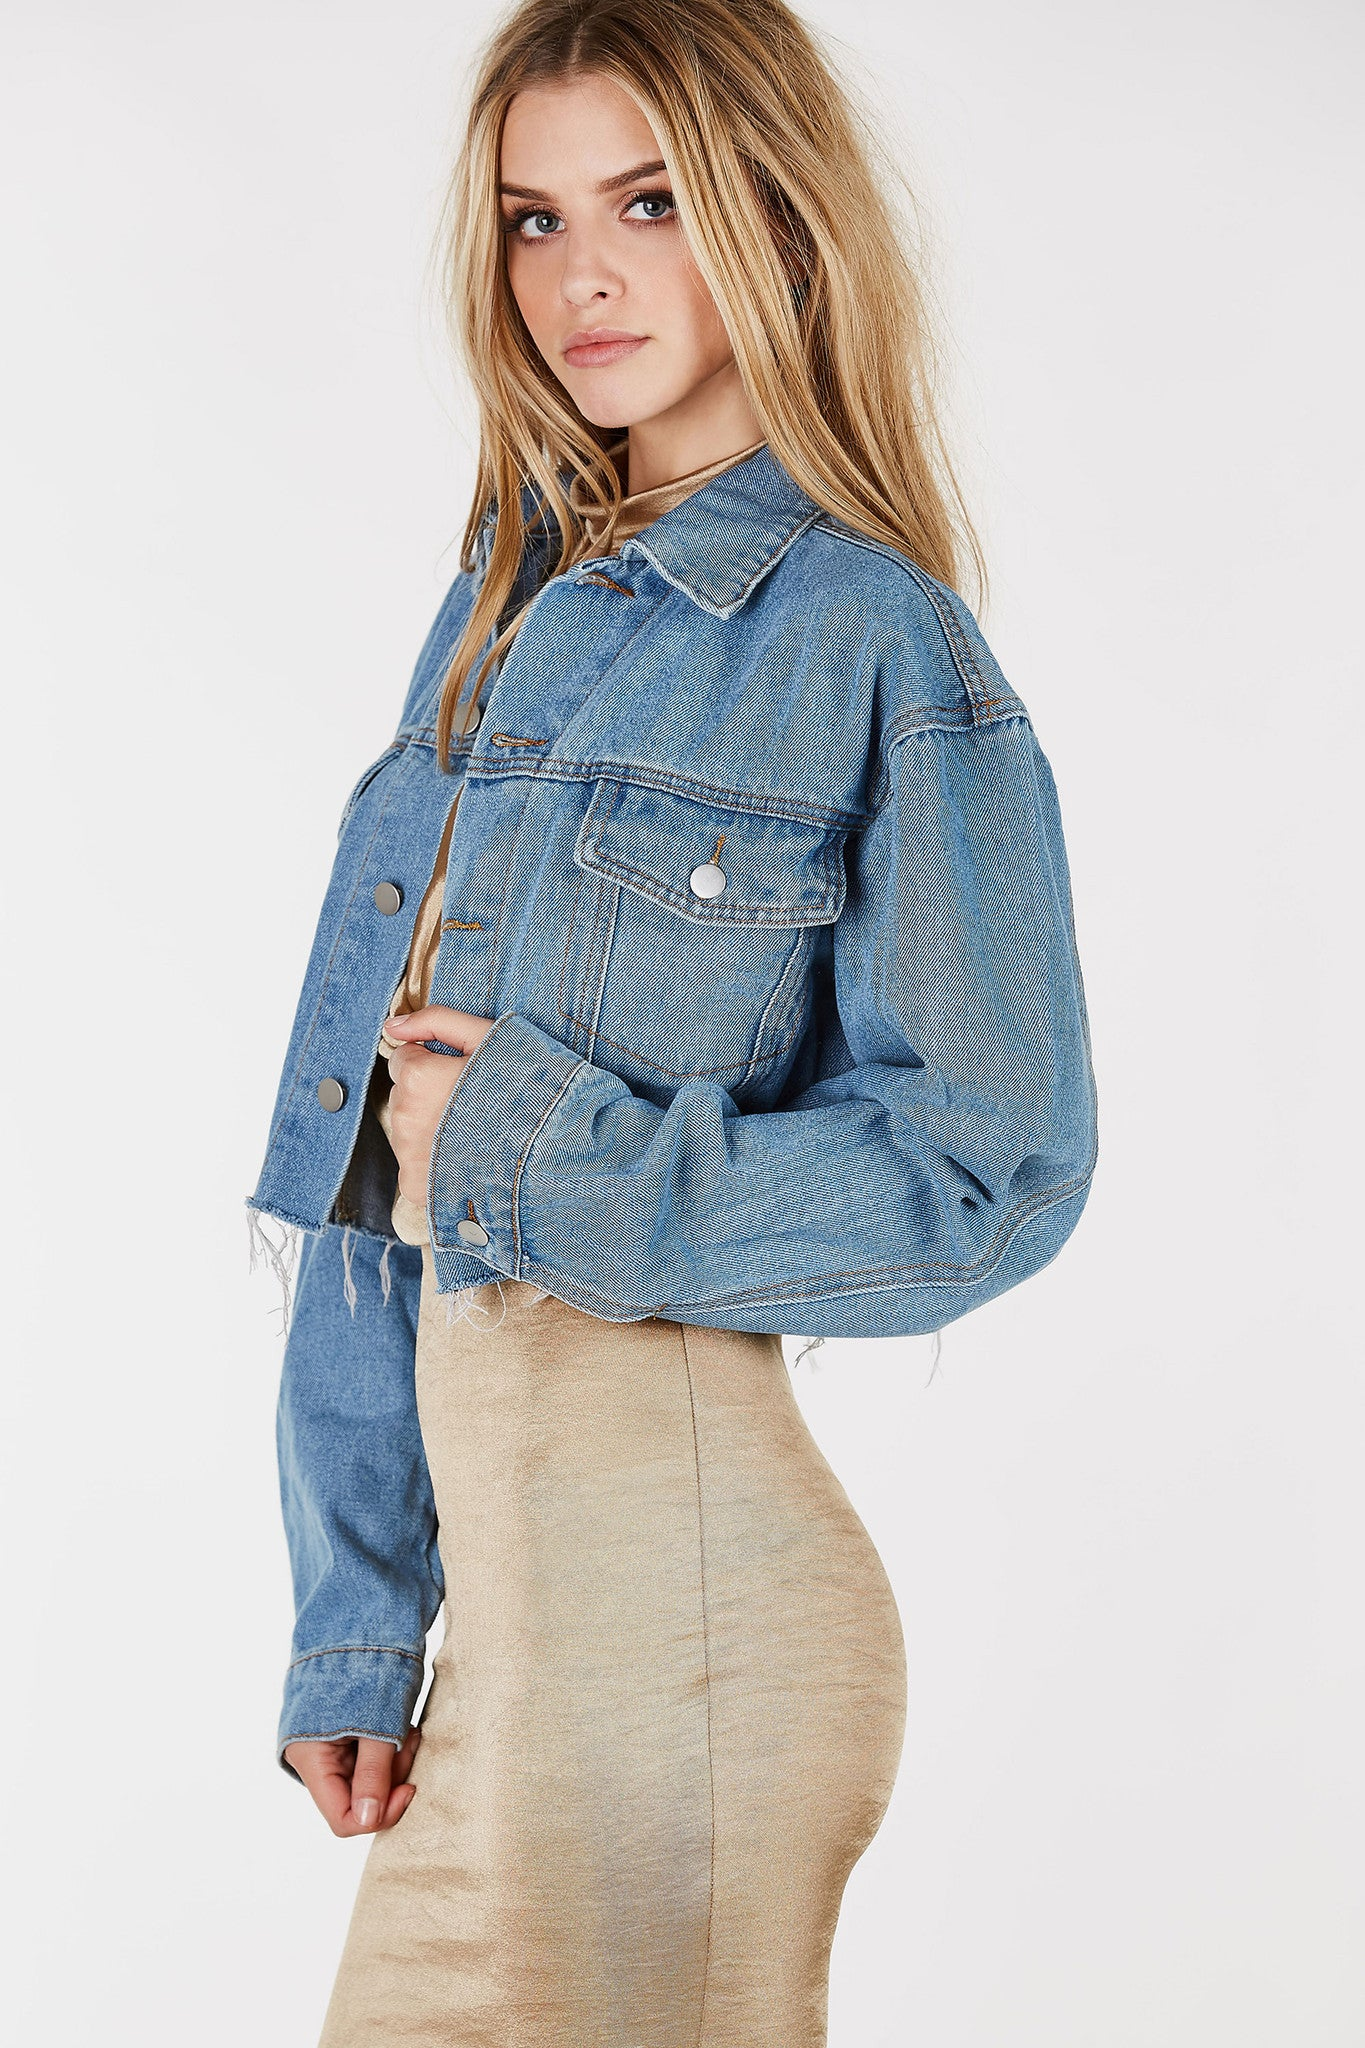 Classic denim jacket in medium wash. Cropped raw hem all around with button closure.